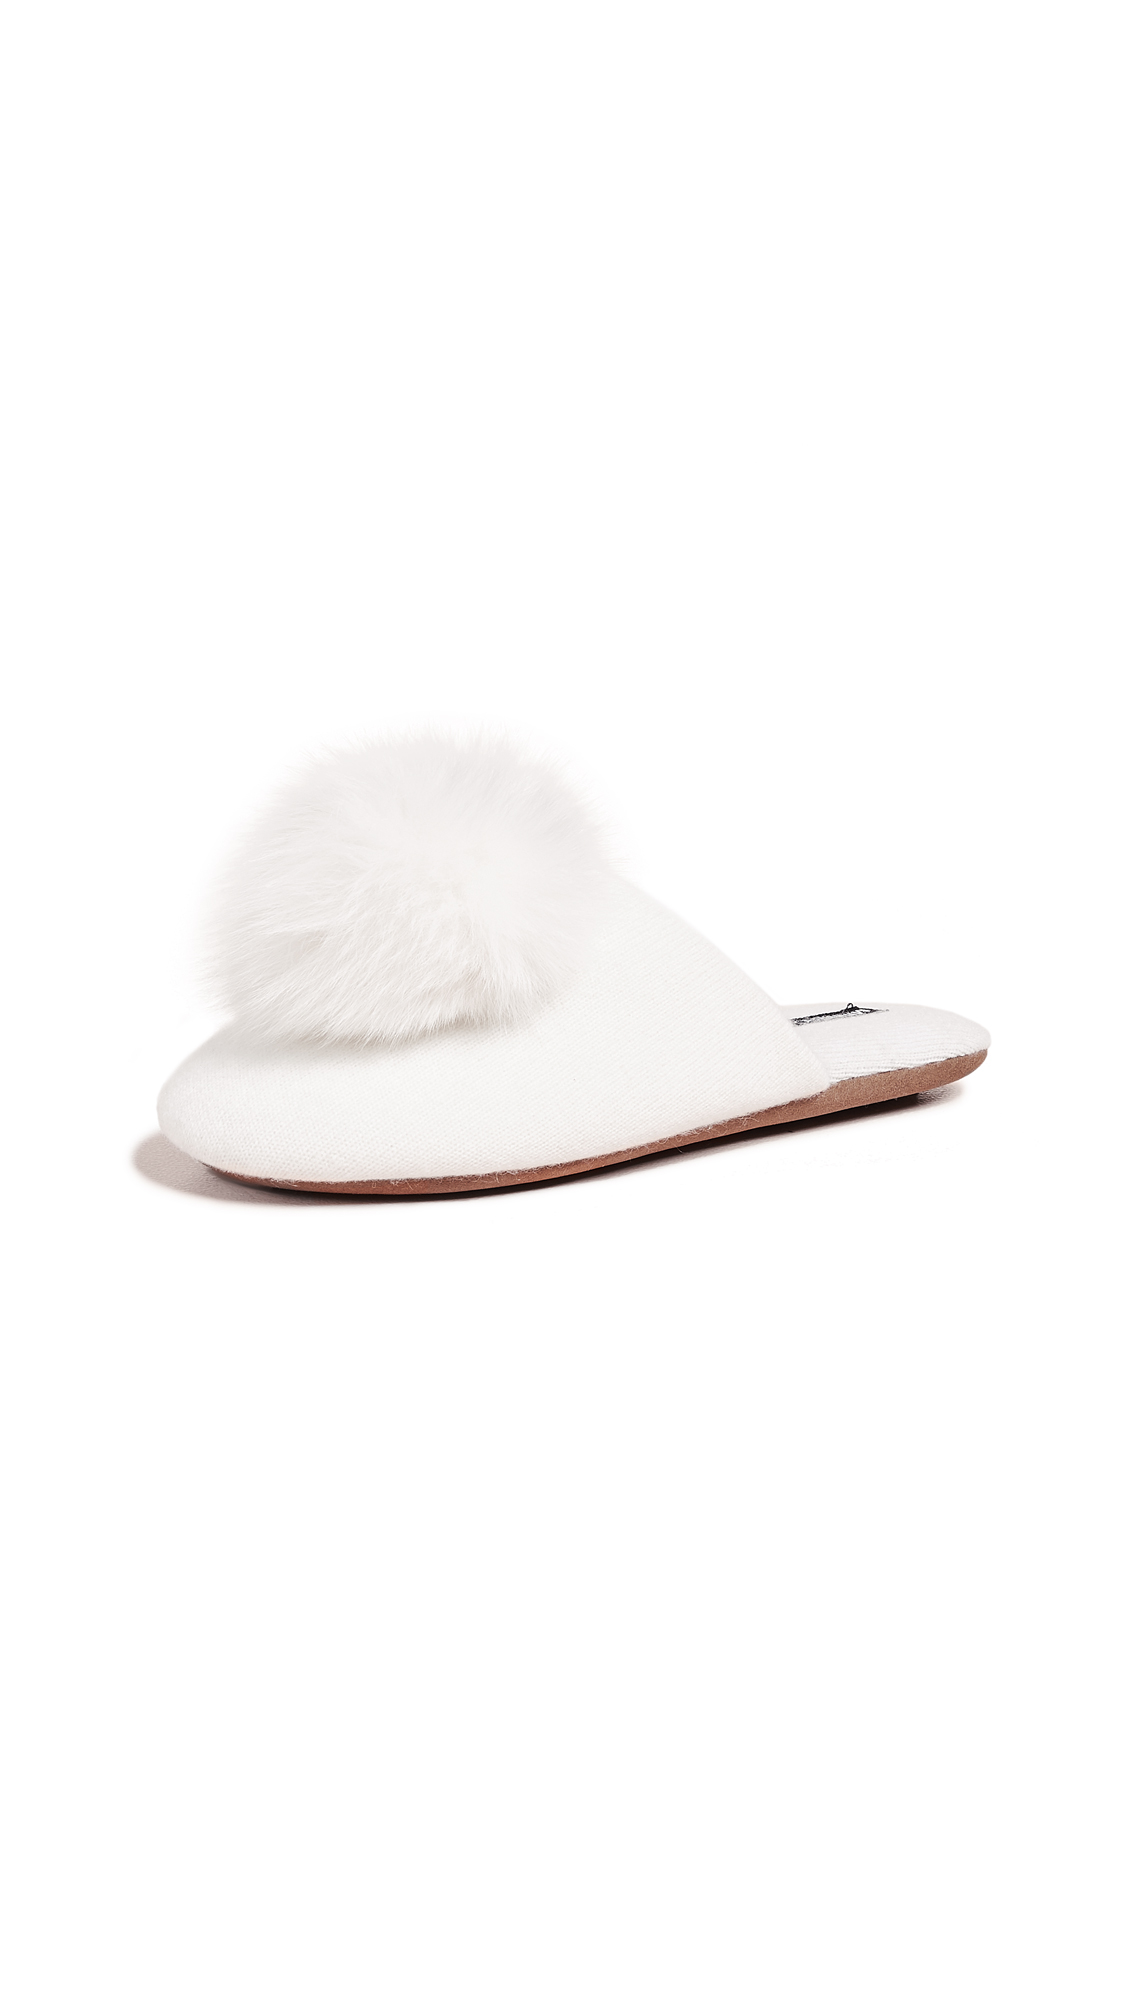 Minnie Rose Cashmere Pom Pom Slippers - White